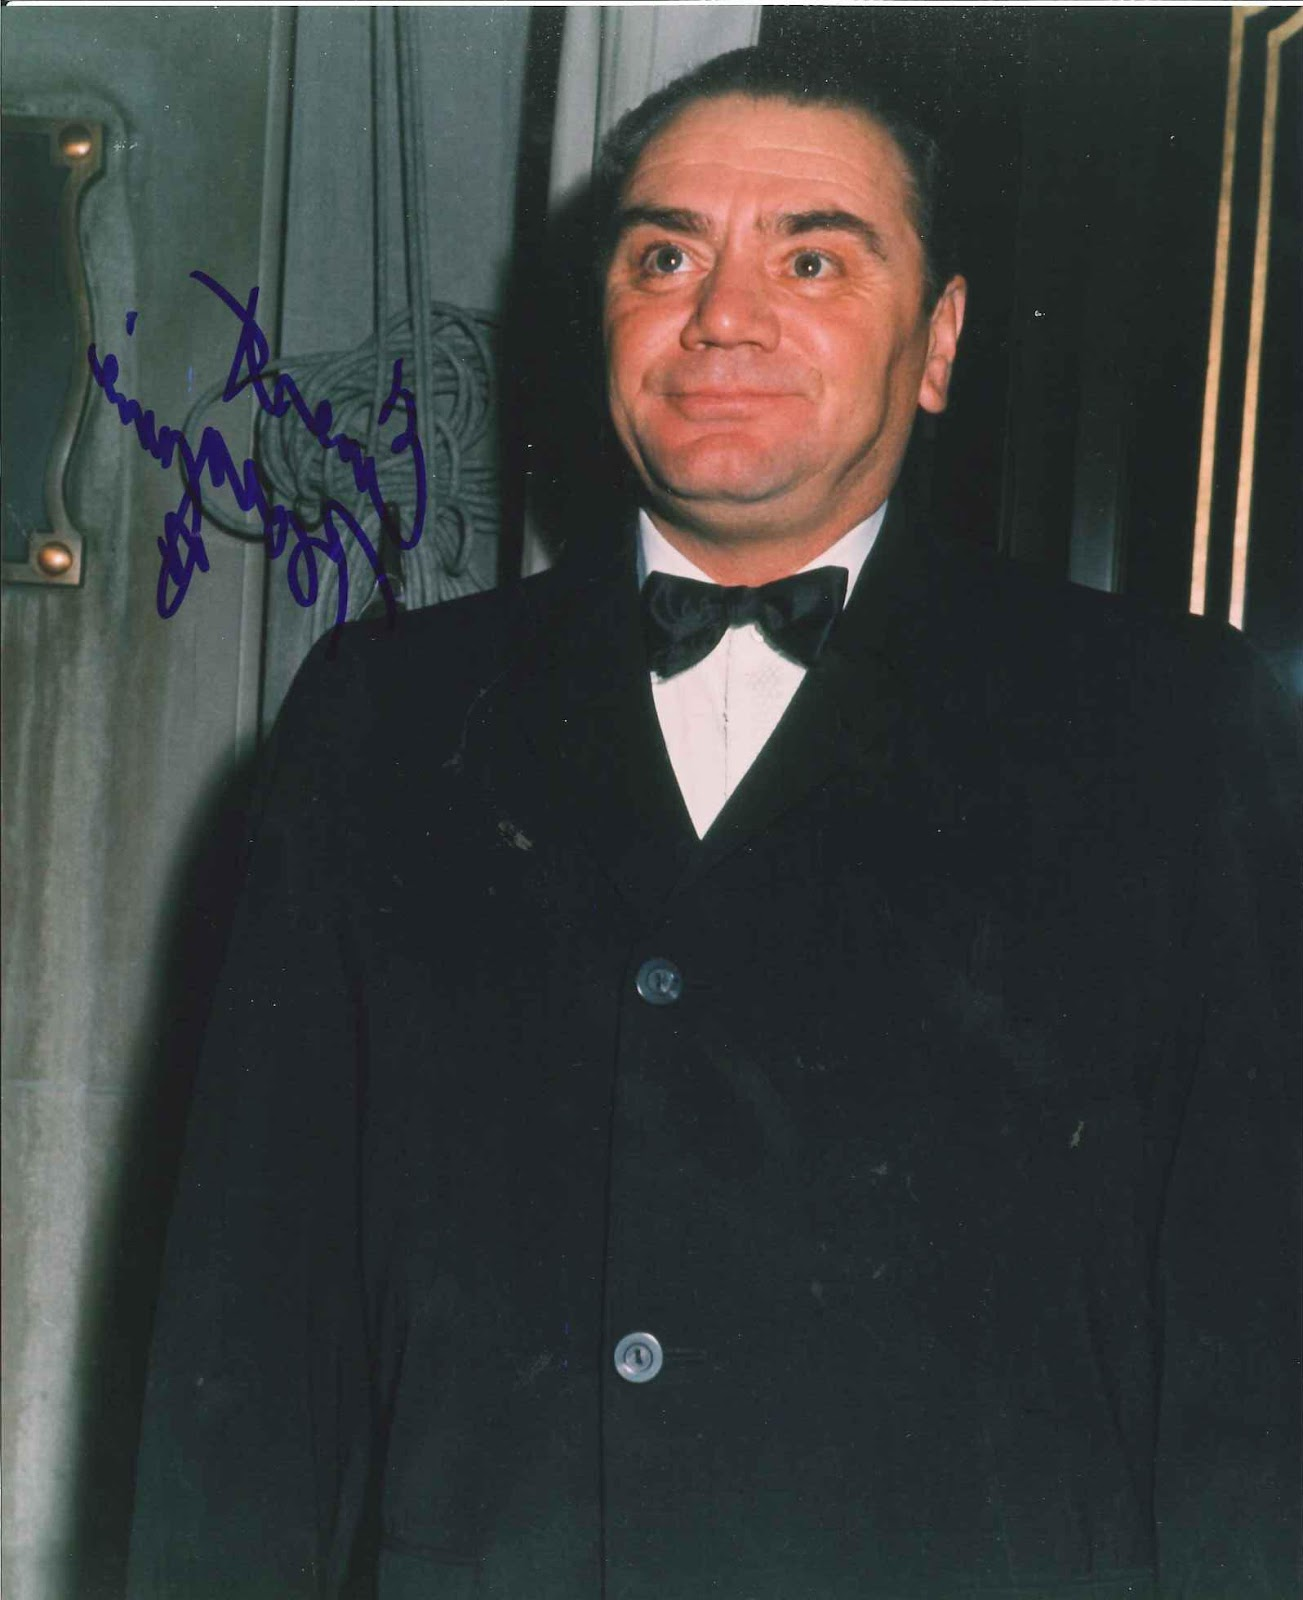 Borgnine, Ernest SP 8x10 color portrait of the Academy Award winning actor